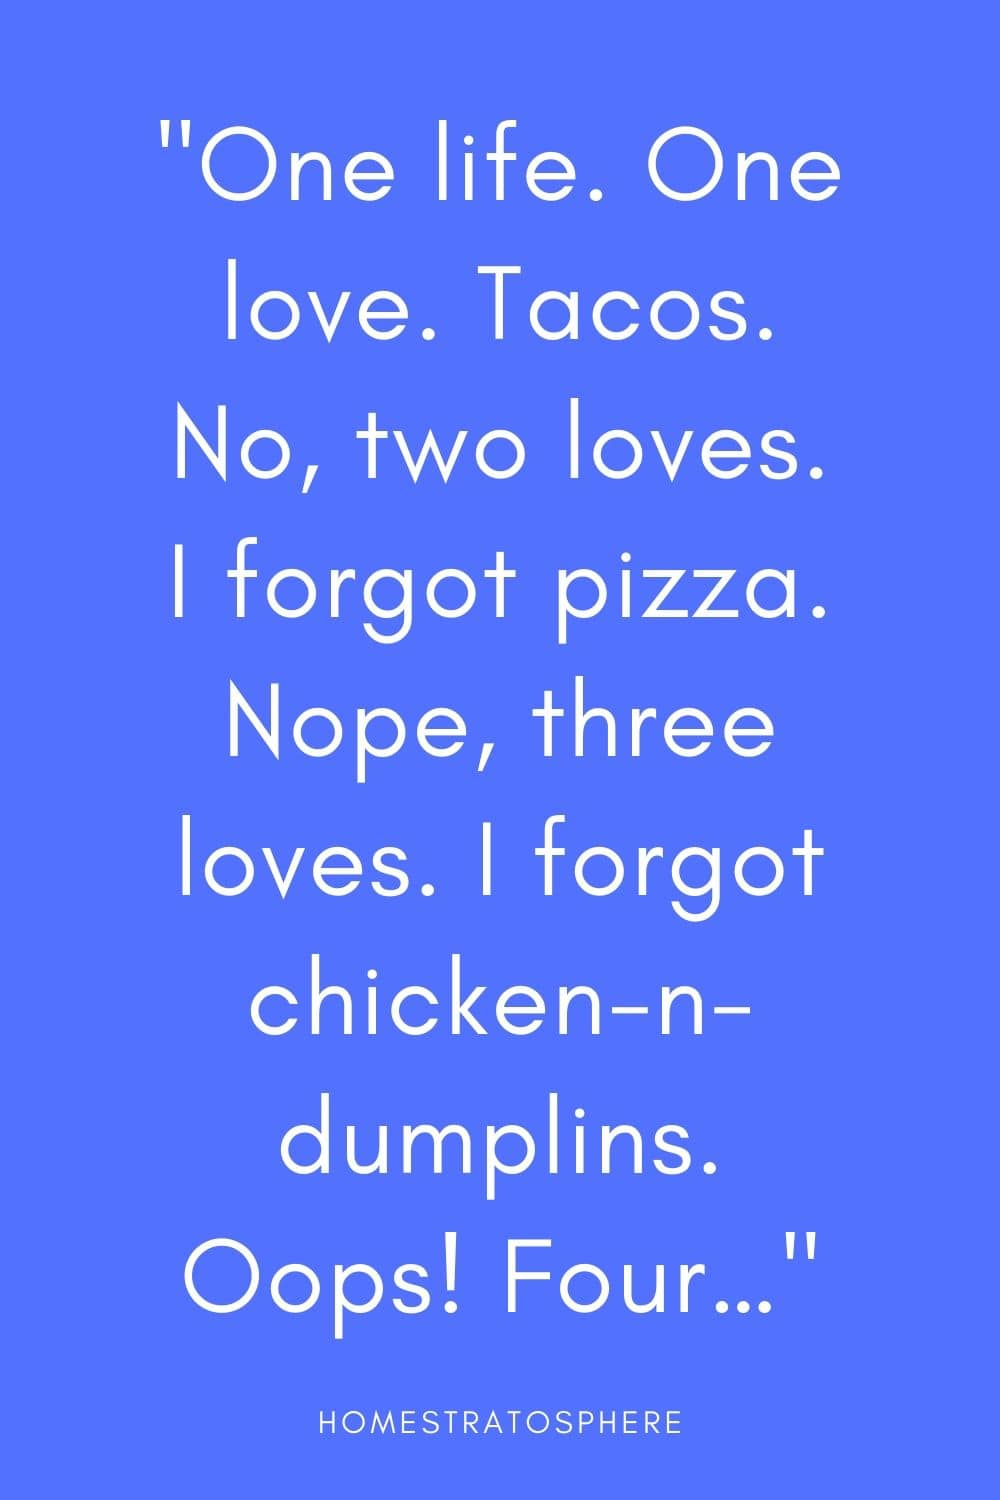 """One life. One love. Tacos. No, two loves. I forgot pizza. Nope, three loves. I forgot chicken-n-dumplins. Oops! Four…"""